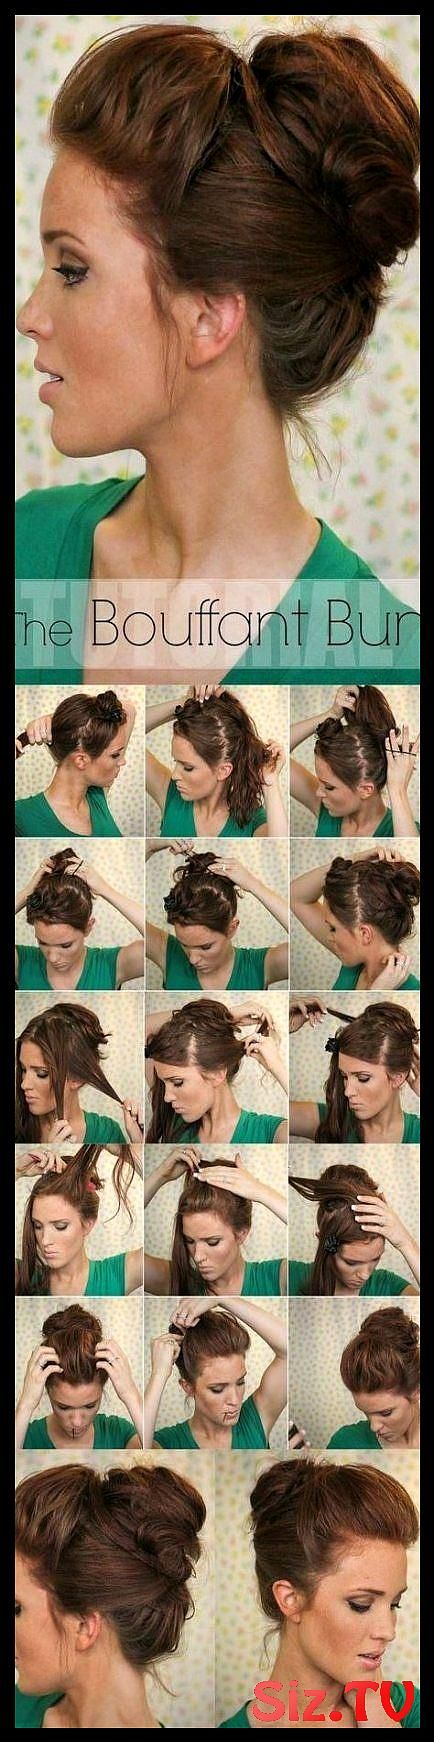 48 Ideas Wedding Hairstyles Updo Messy High Bridesmaid 48 Ideas Wedding Hairstyles Updo Messy High Bridesmaid Wedding Hairstyles #highmessybunbridesma...